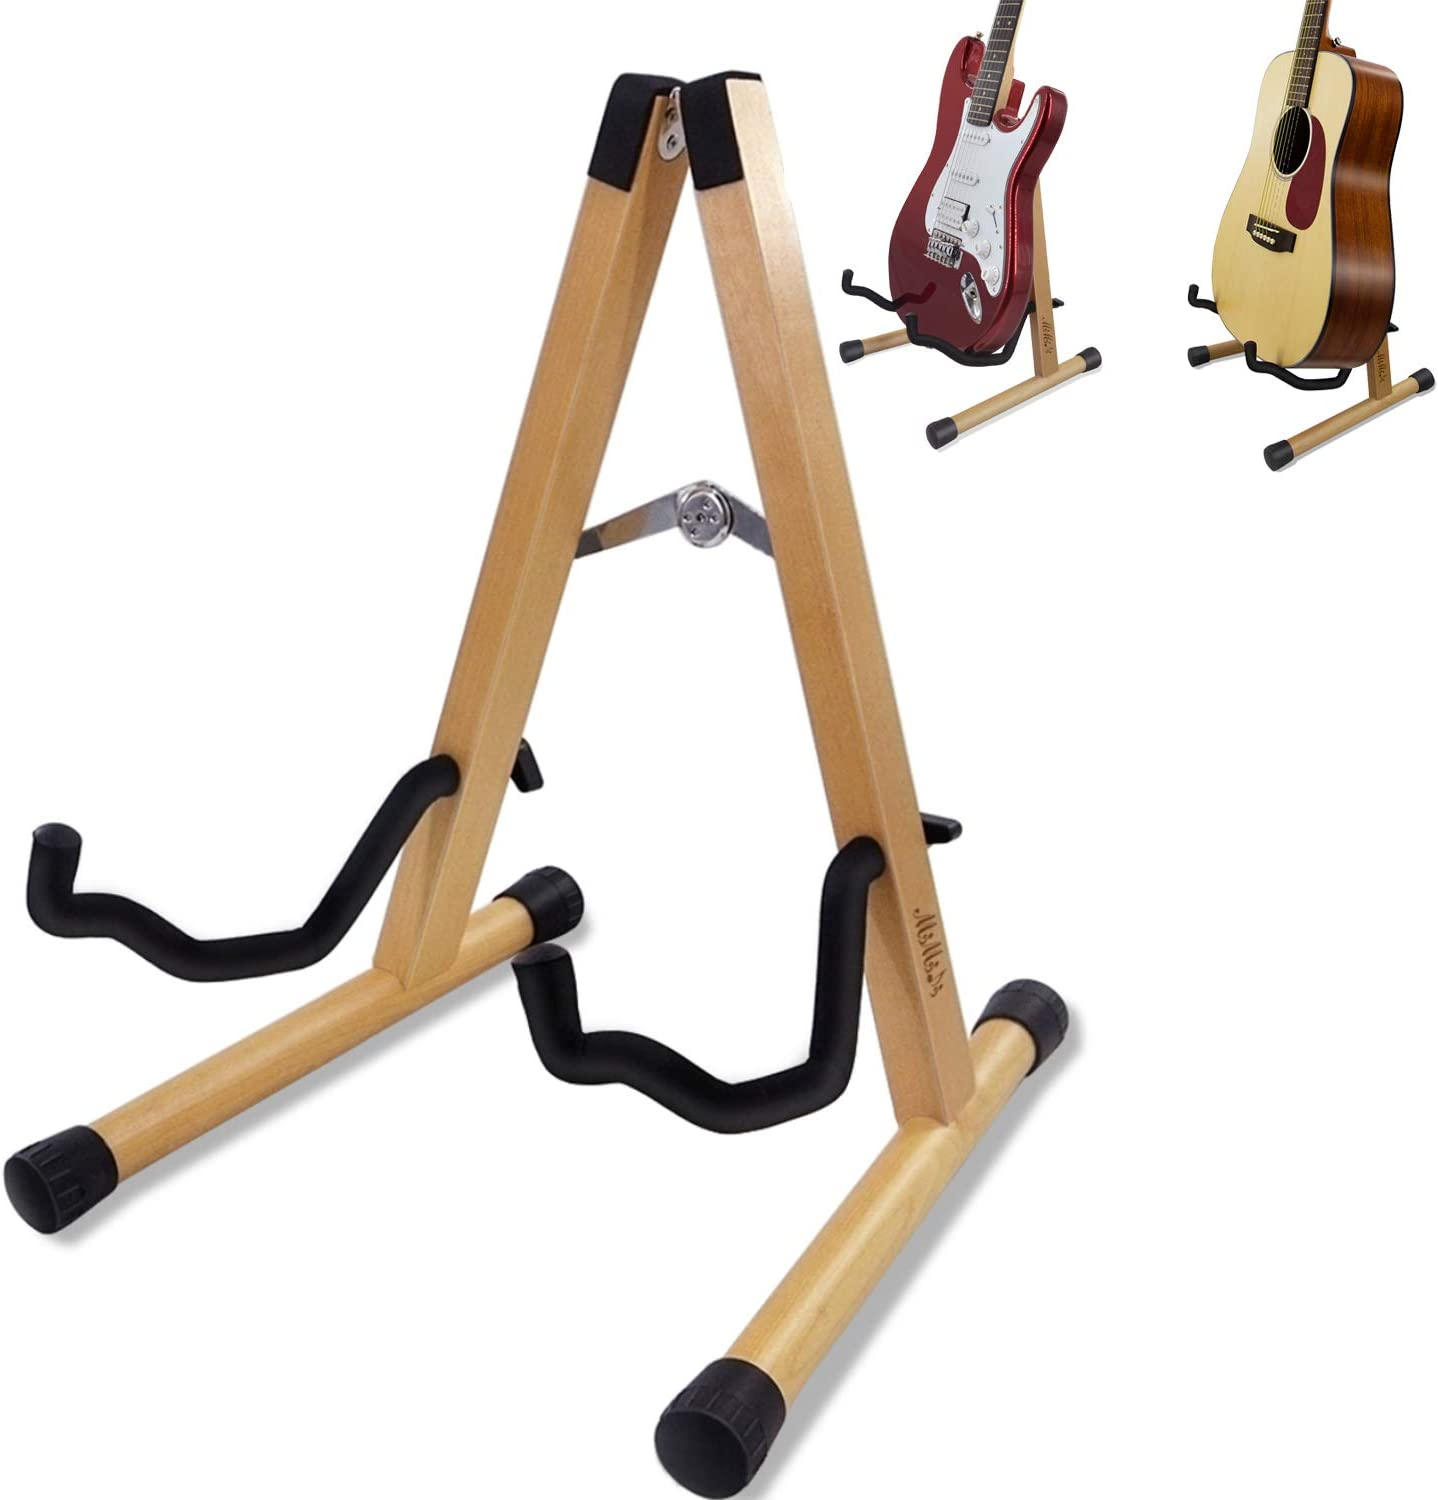 Guitar Stand Folding Universal A frame Stand for All Guitars Acoustic Classic